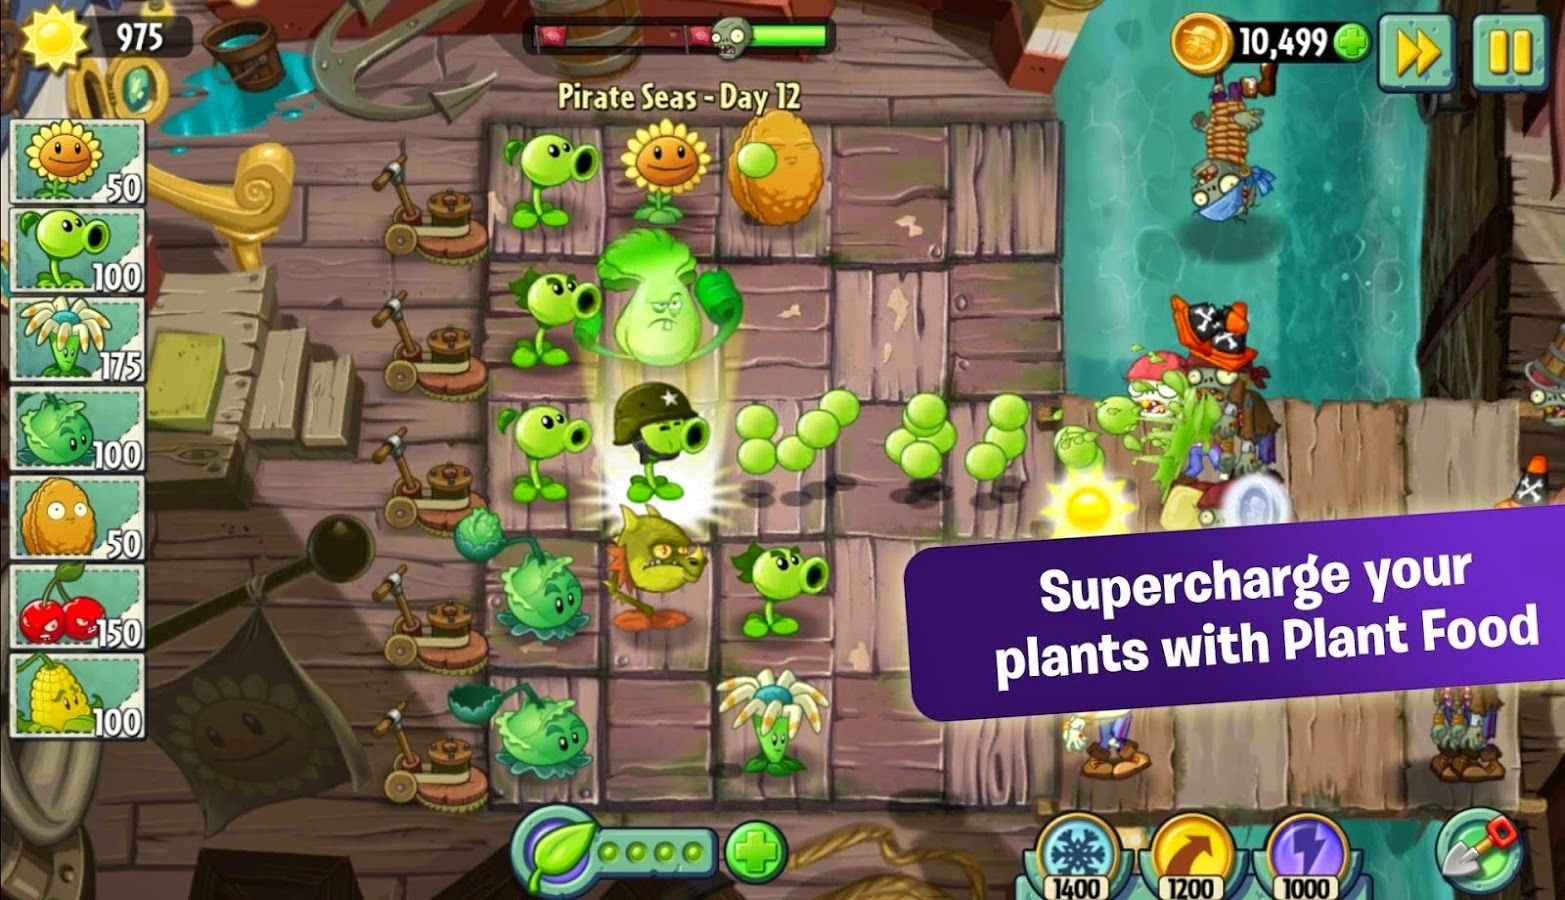 Plants Vs Zombies 2 Hack Tool Ios Android New Glitch No Root Plants Vs Zombies 2 Hack And Cheats Plants Vs Zombies 2 Plants Vs Zombies Plants Zombie 2